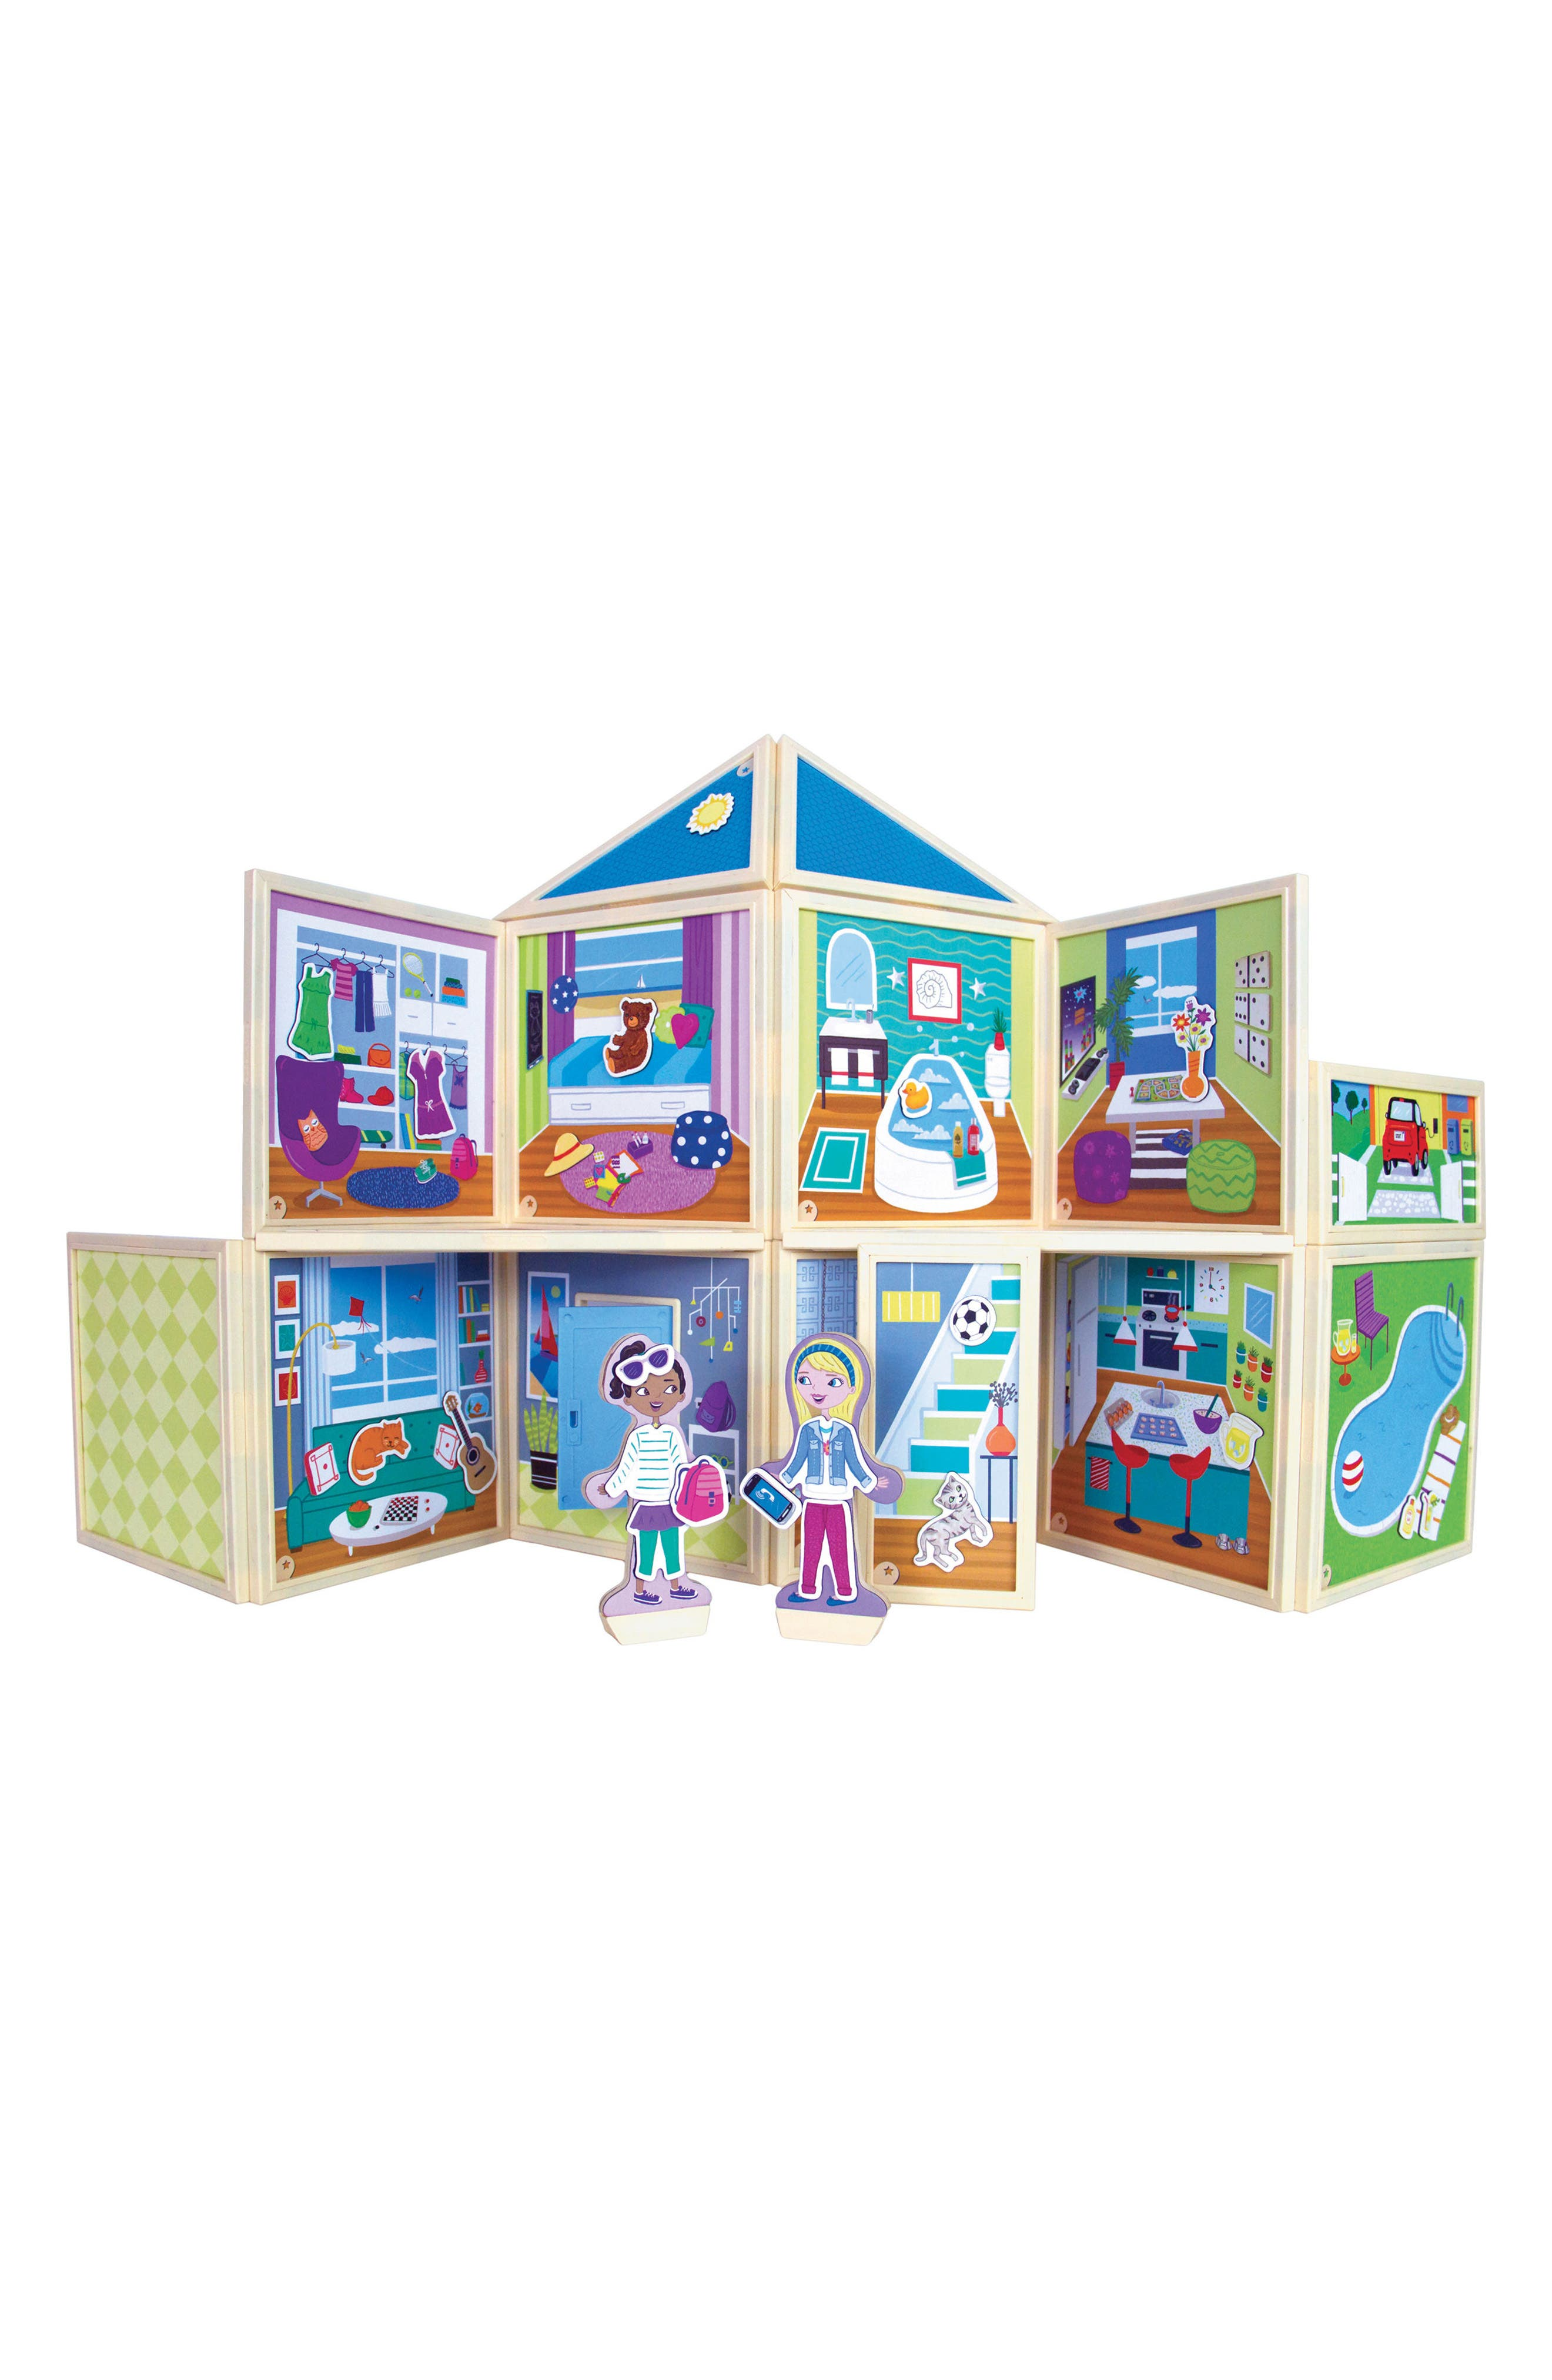 Main Image - Build and Imagine Malia's House 61-Piece Magnetic Dollhouse